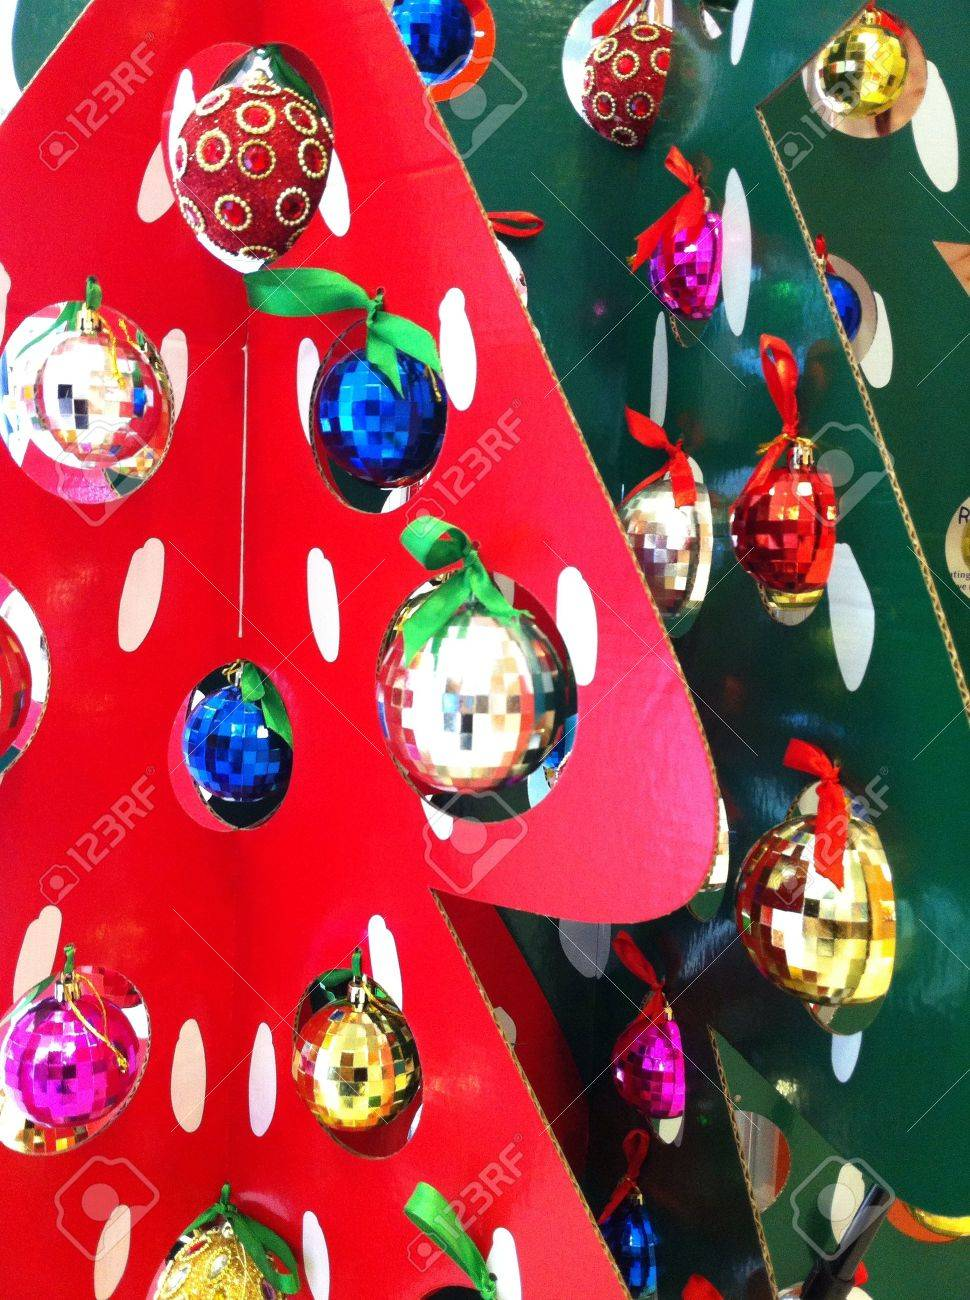 creative christmas tree made out of cardboard with ornaments stock photo 24182884